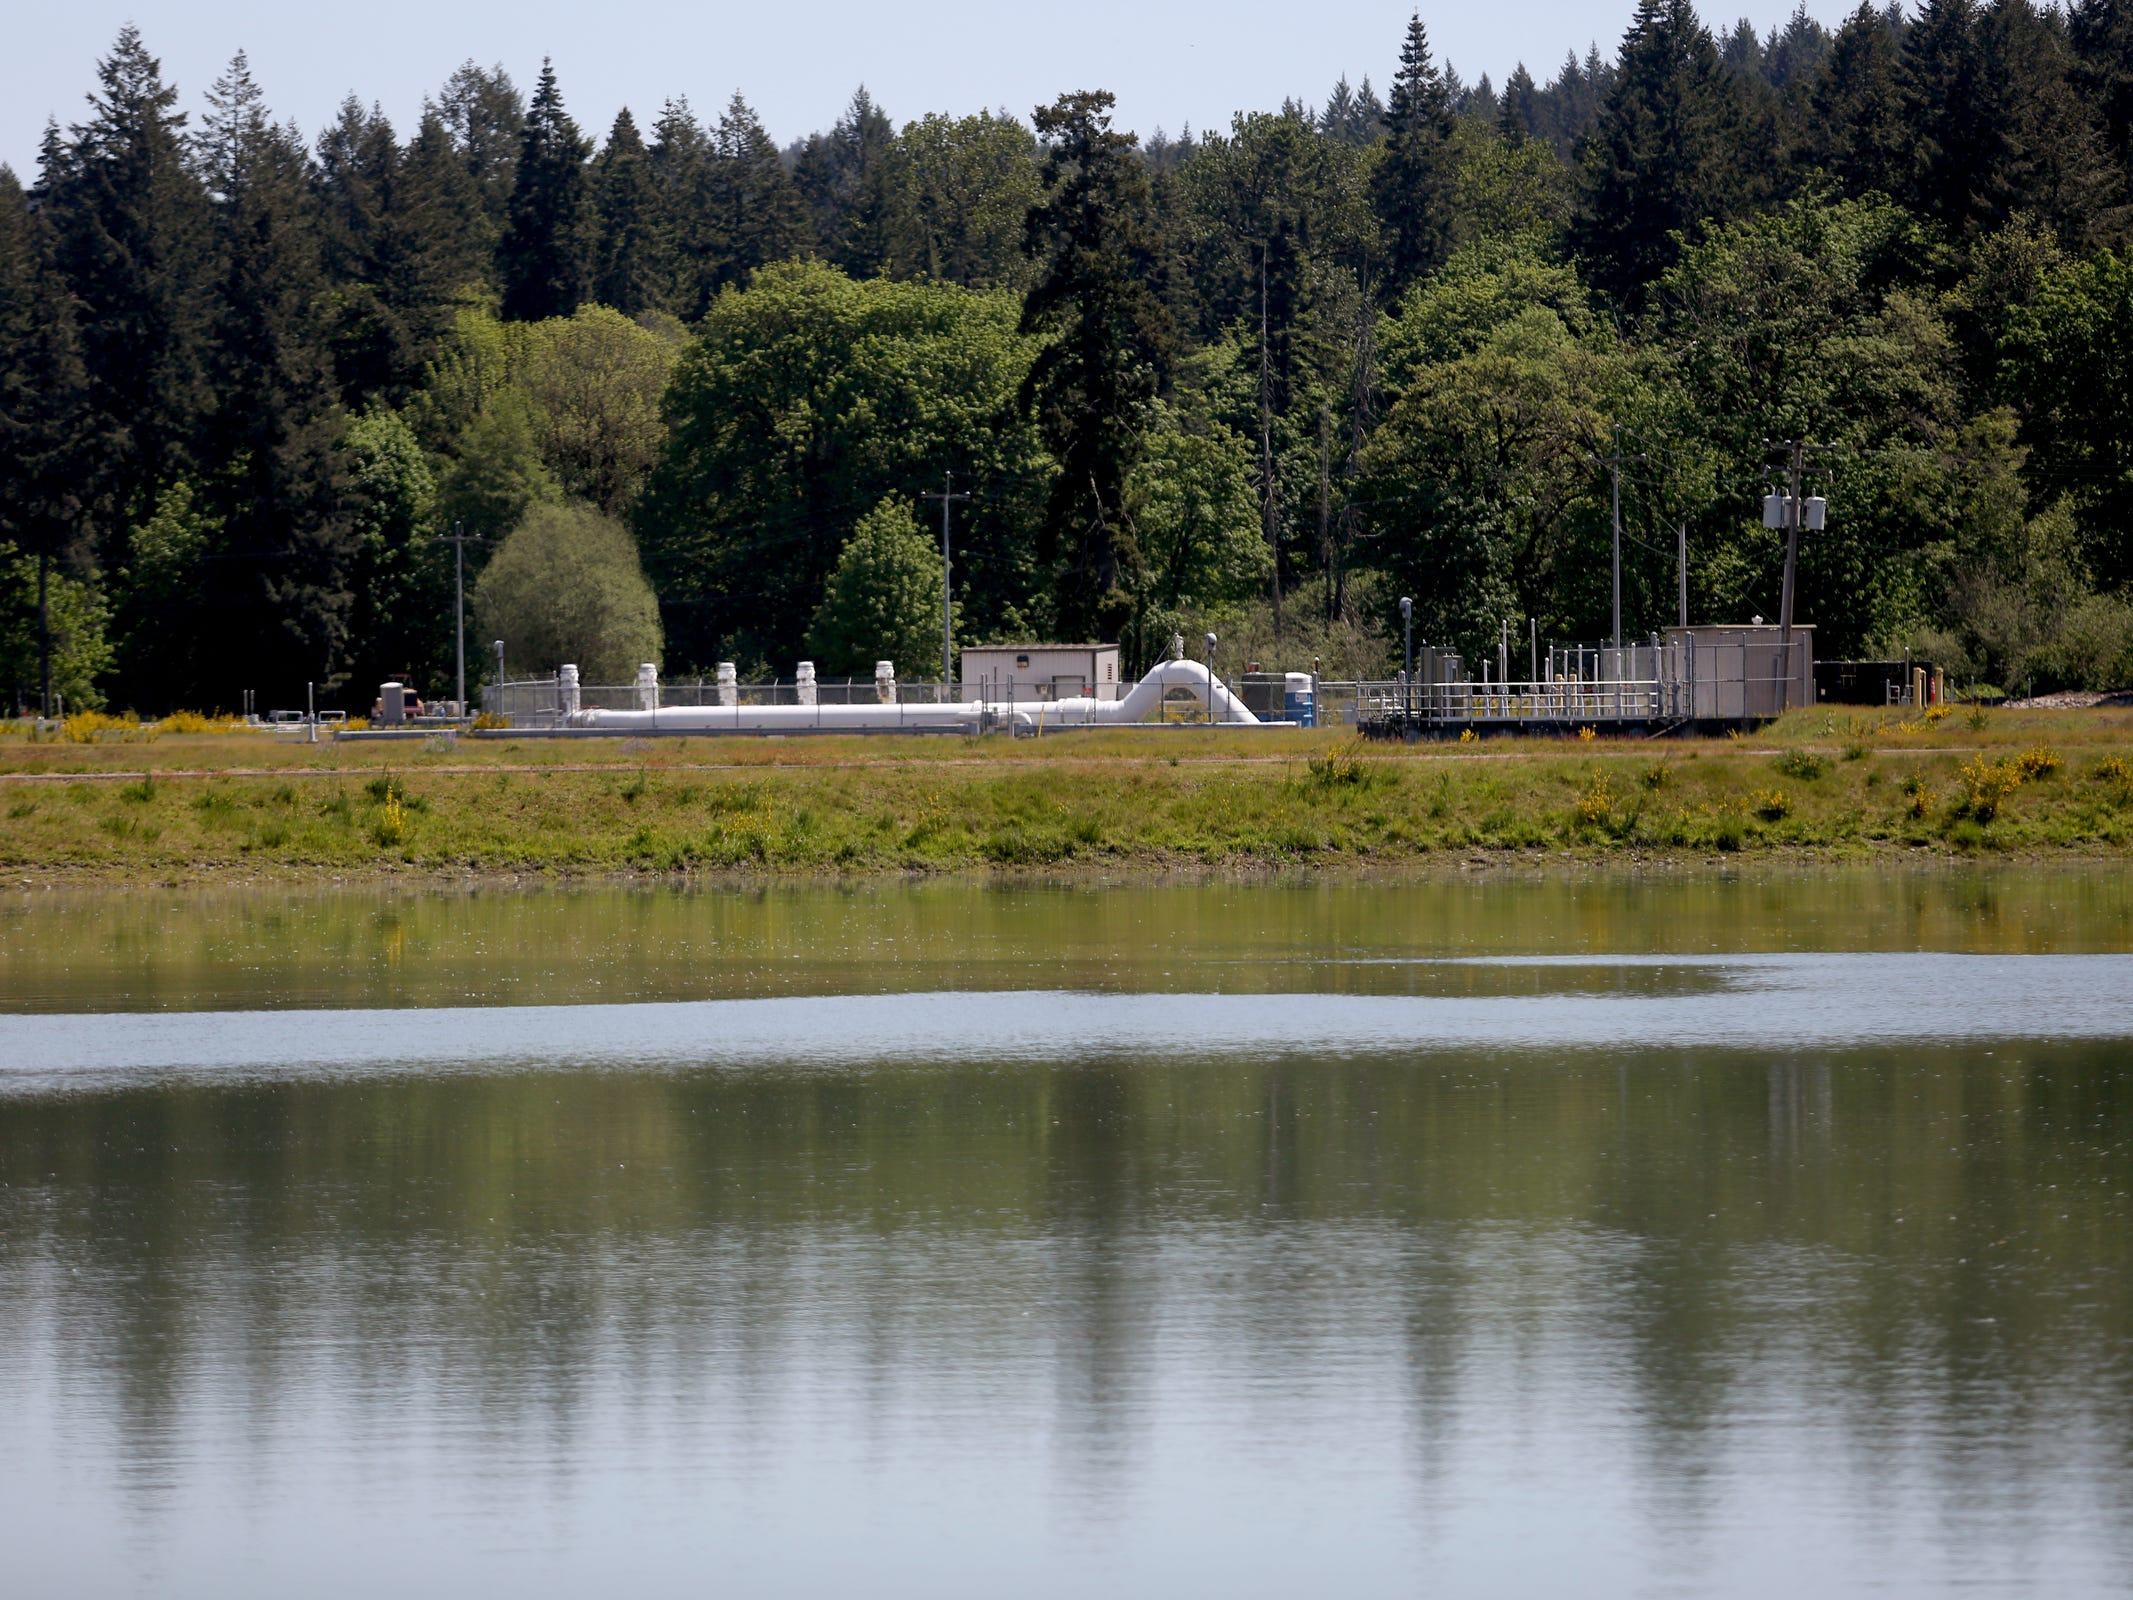 Geren Island Water Treatment Facility near Stayton on May 10, 2019. Salem officials are planning to spend more than $75 million to build defenses against toxic algae, in an effort to avoid a rerun of last year's drinking water crisis.